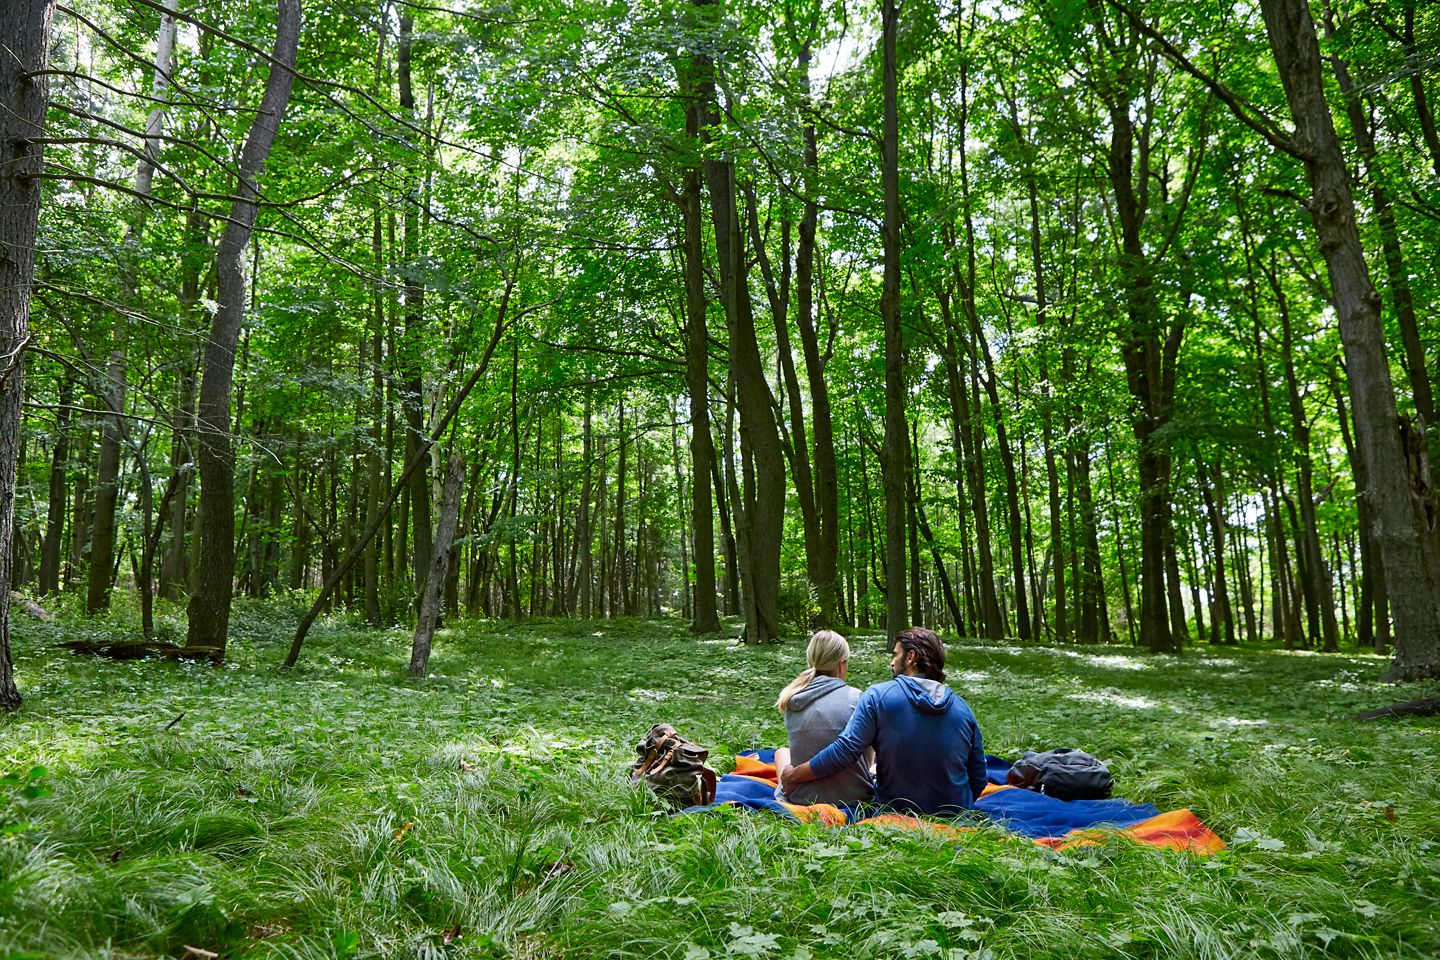 a couple on a blanket in the woods